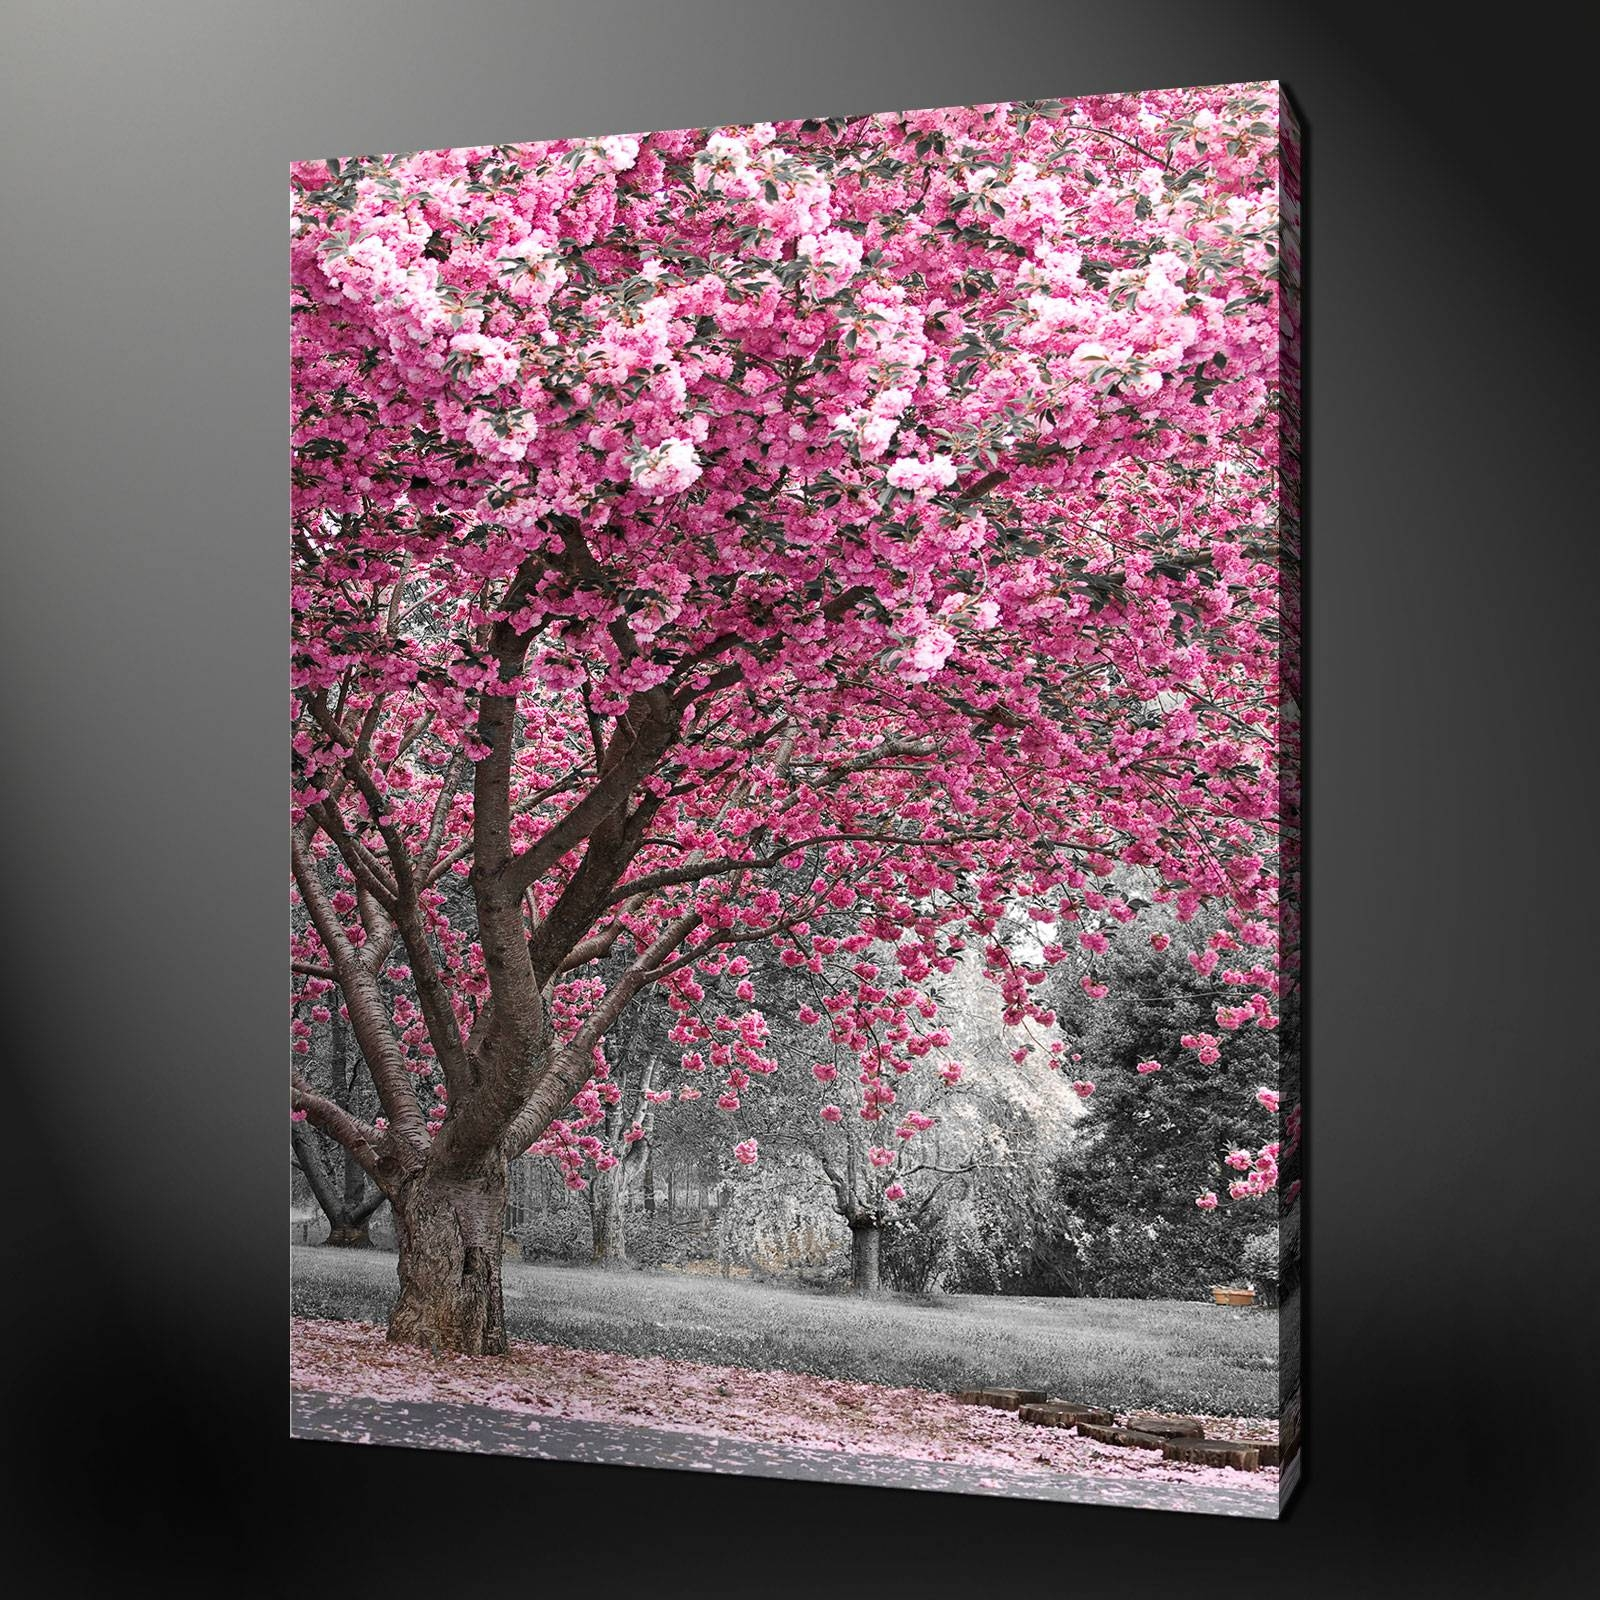 Wall Art Designs: Pink Wall Art Pink Flowers Wall Art The Best Within Best And Newest Pink Flower Wall Art (View 18 of 20)